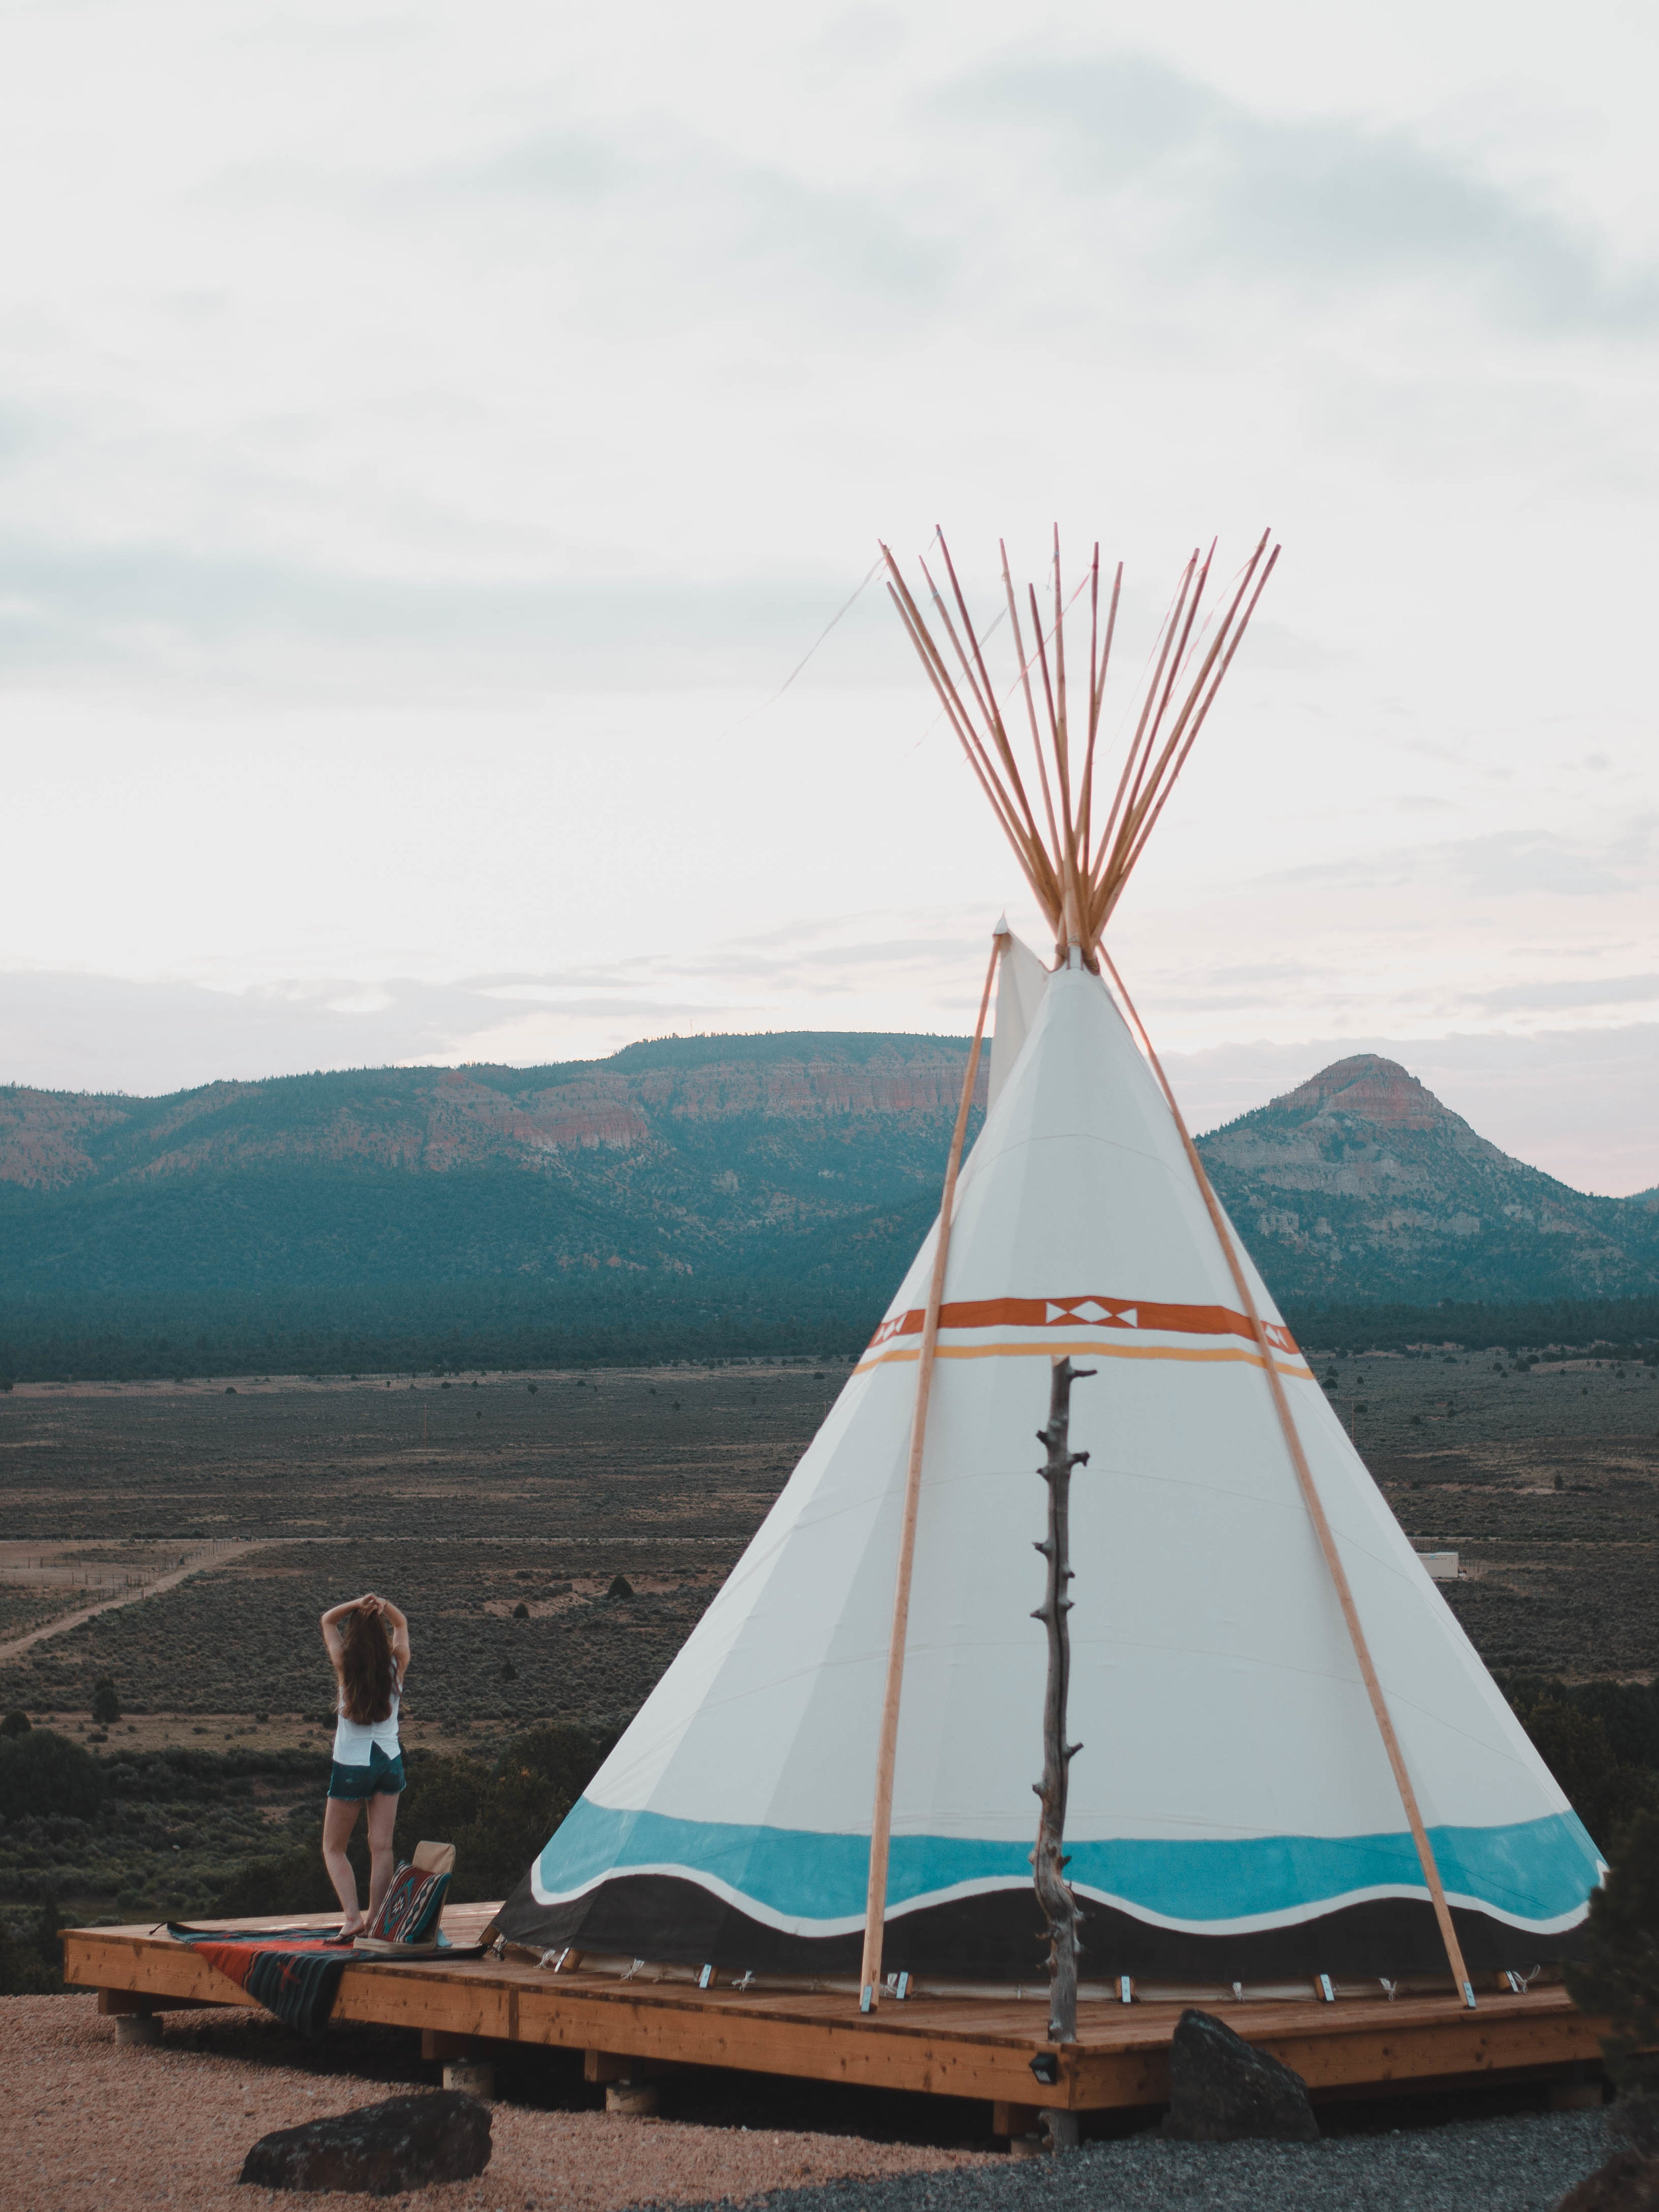 Experience tipi camping when you visit Bryce Canyon